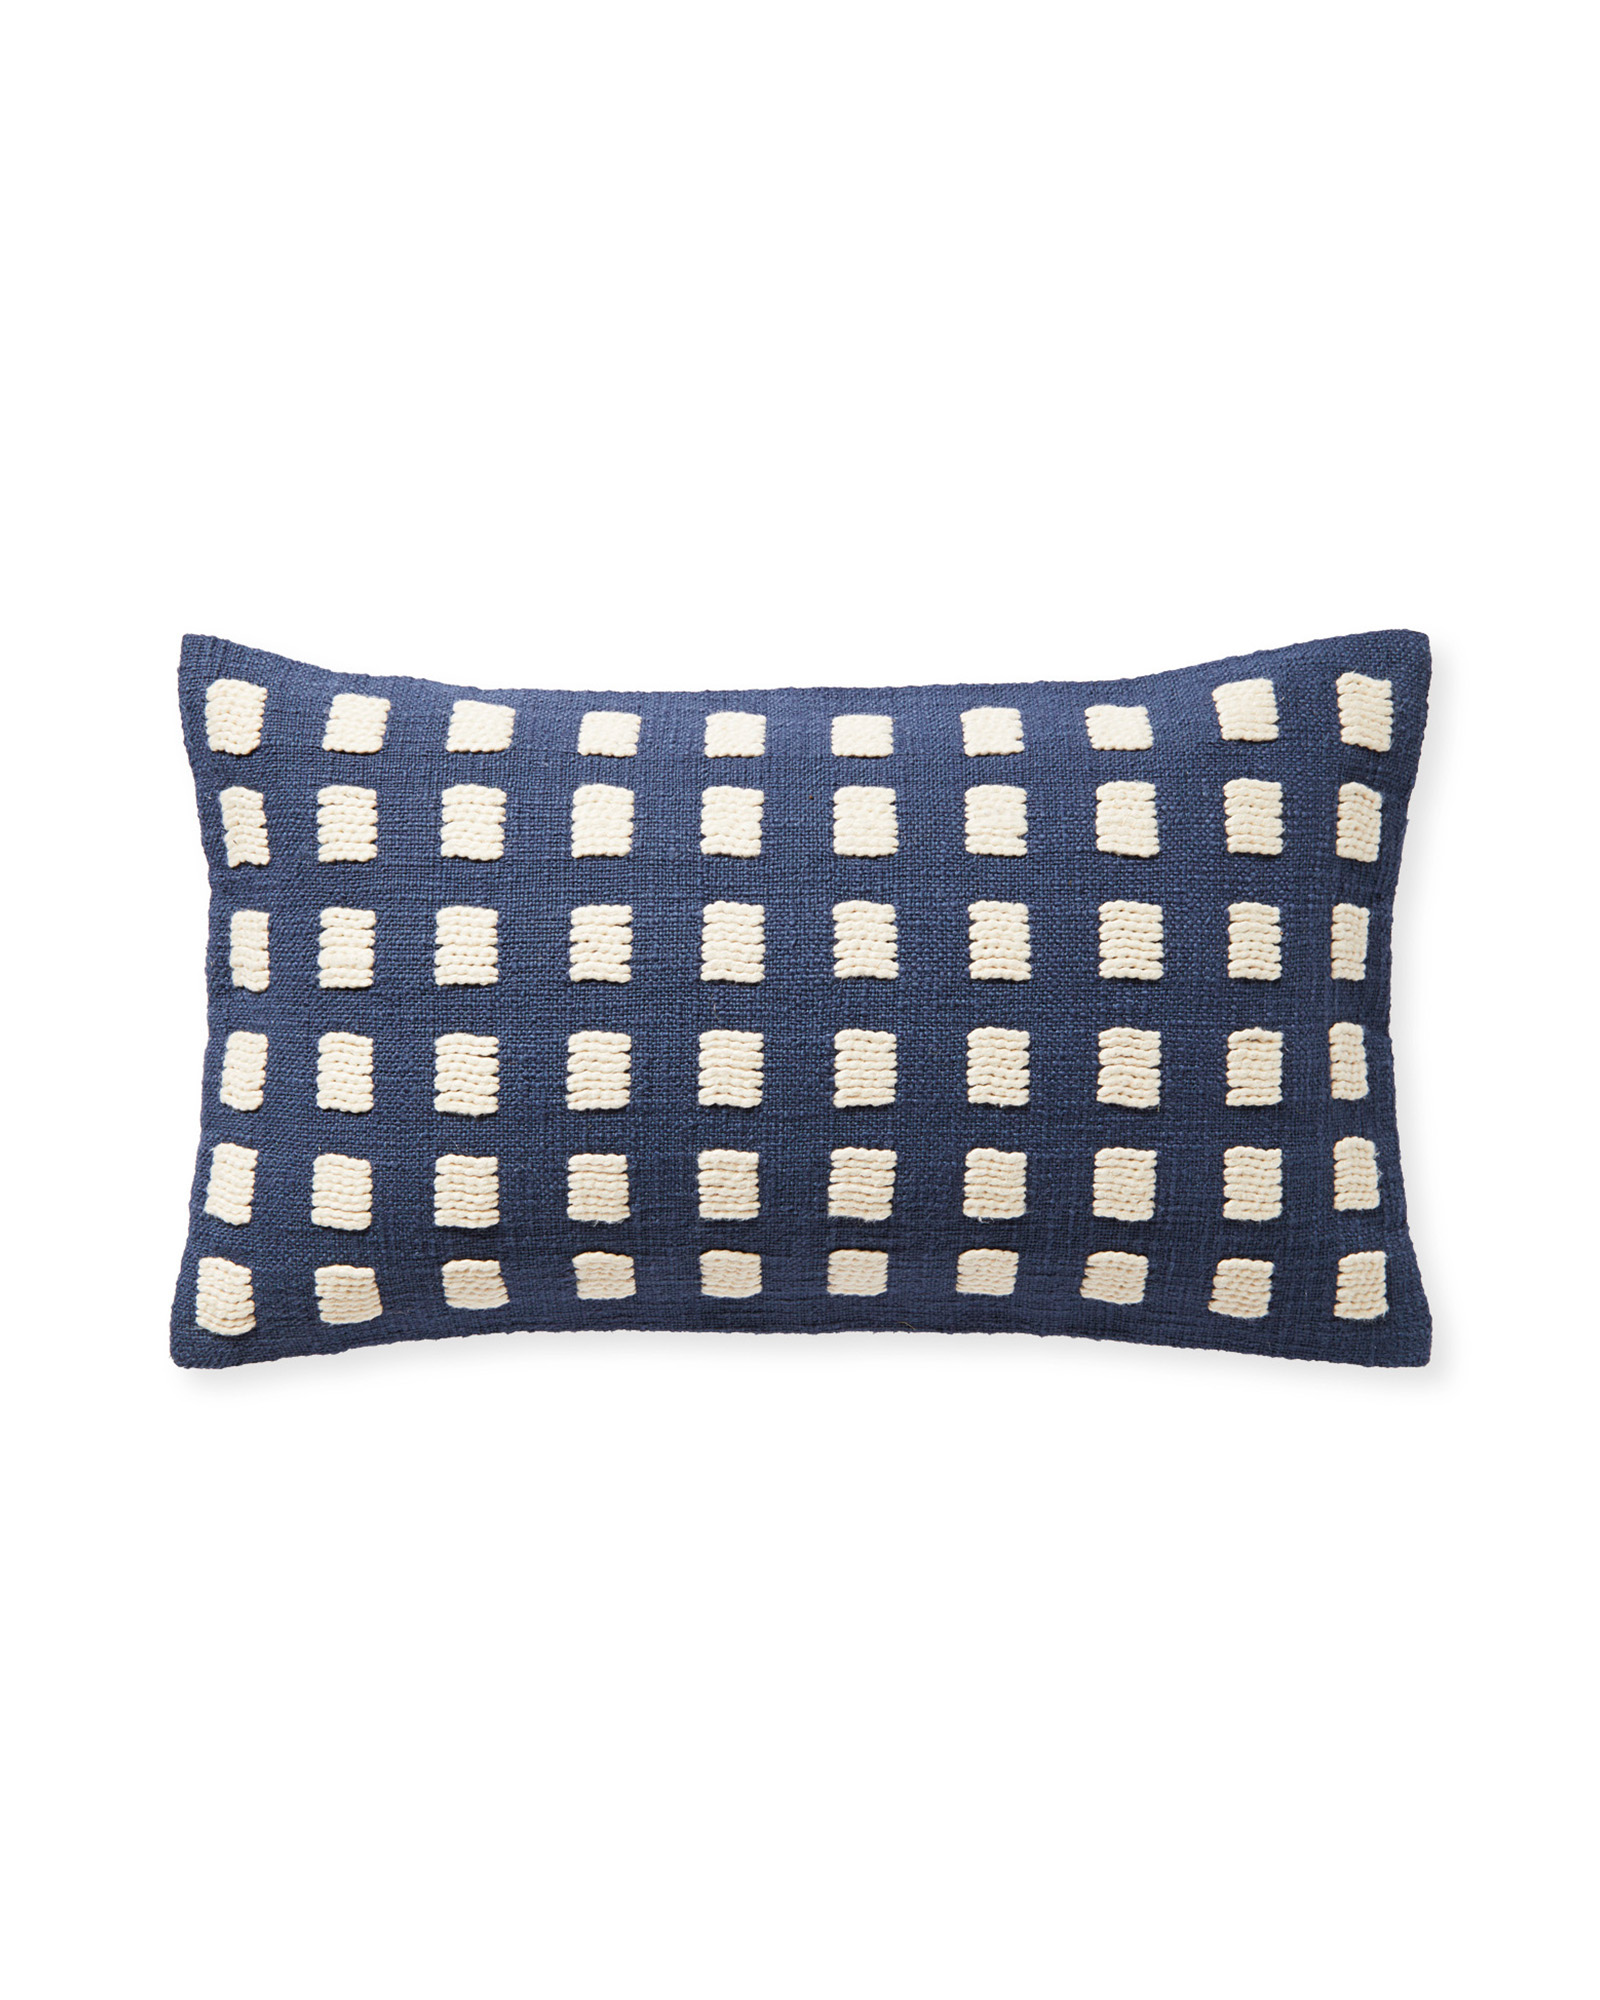 Pebble Cove Pillow Cover, Navy/Ivory